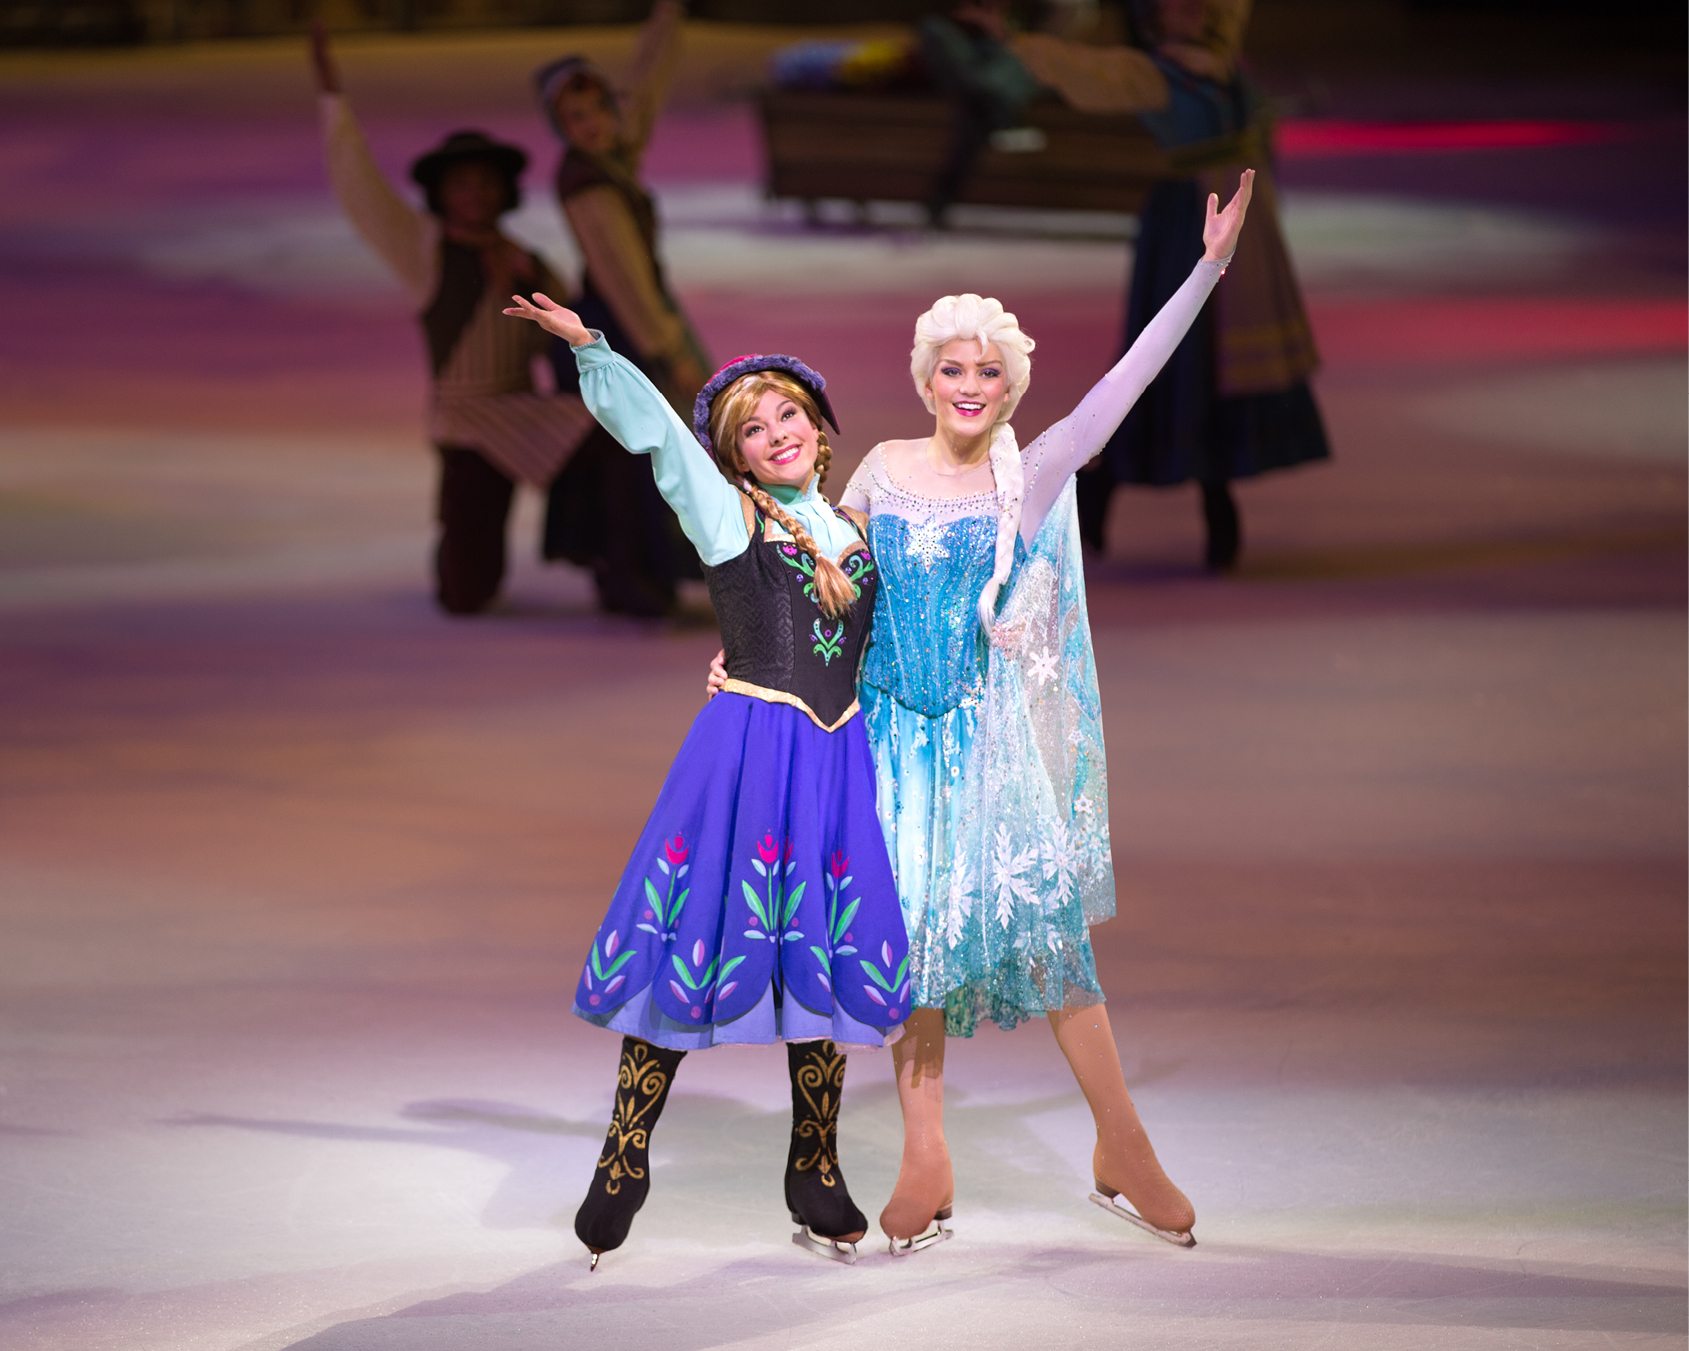 Elsa and Anna dancing on ice